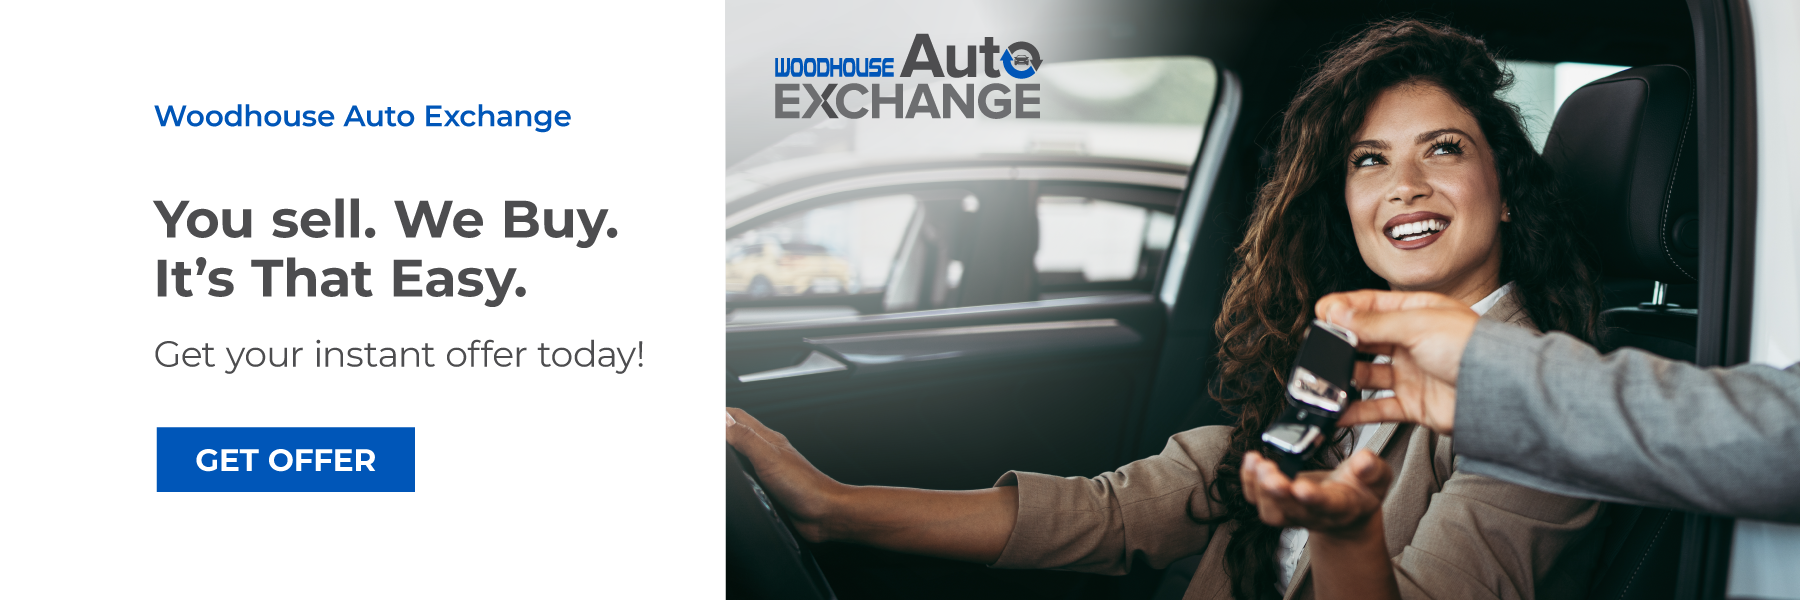 Woodhouse Auto Exchange You Sell.  We Buy.  It's that Easy.